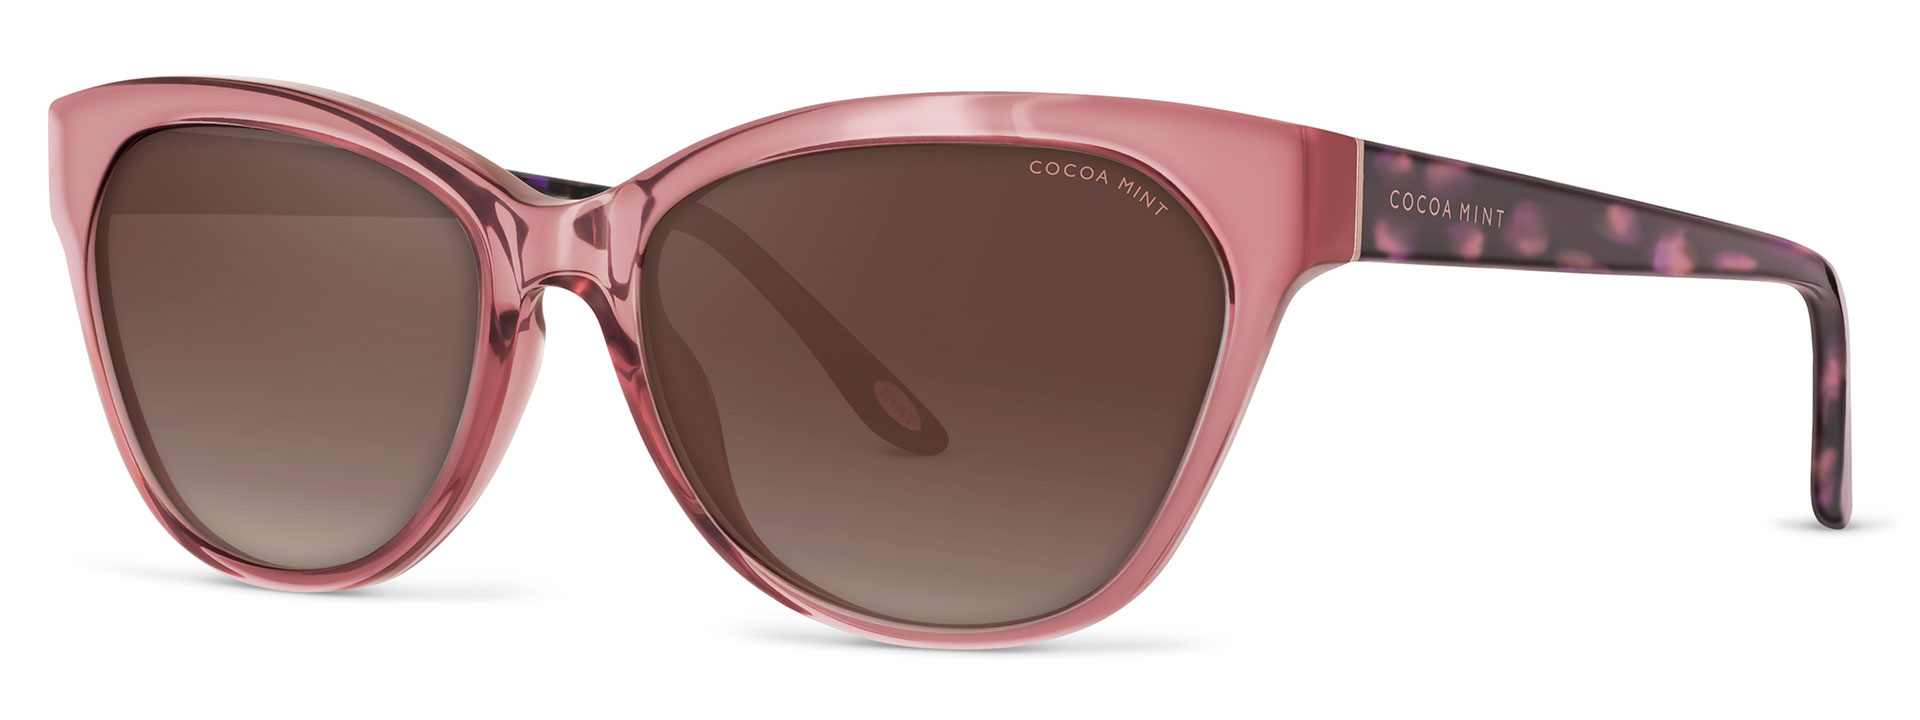 Cocoa Mint Sun Glasses - Pink - CMS2065-C1